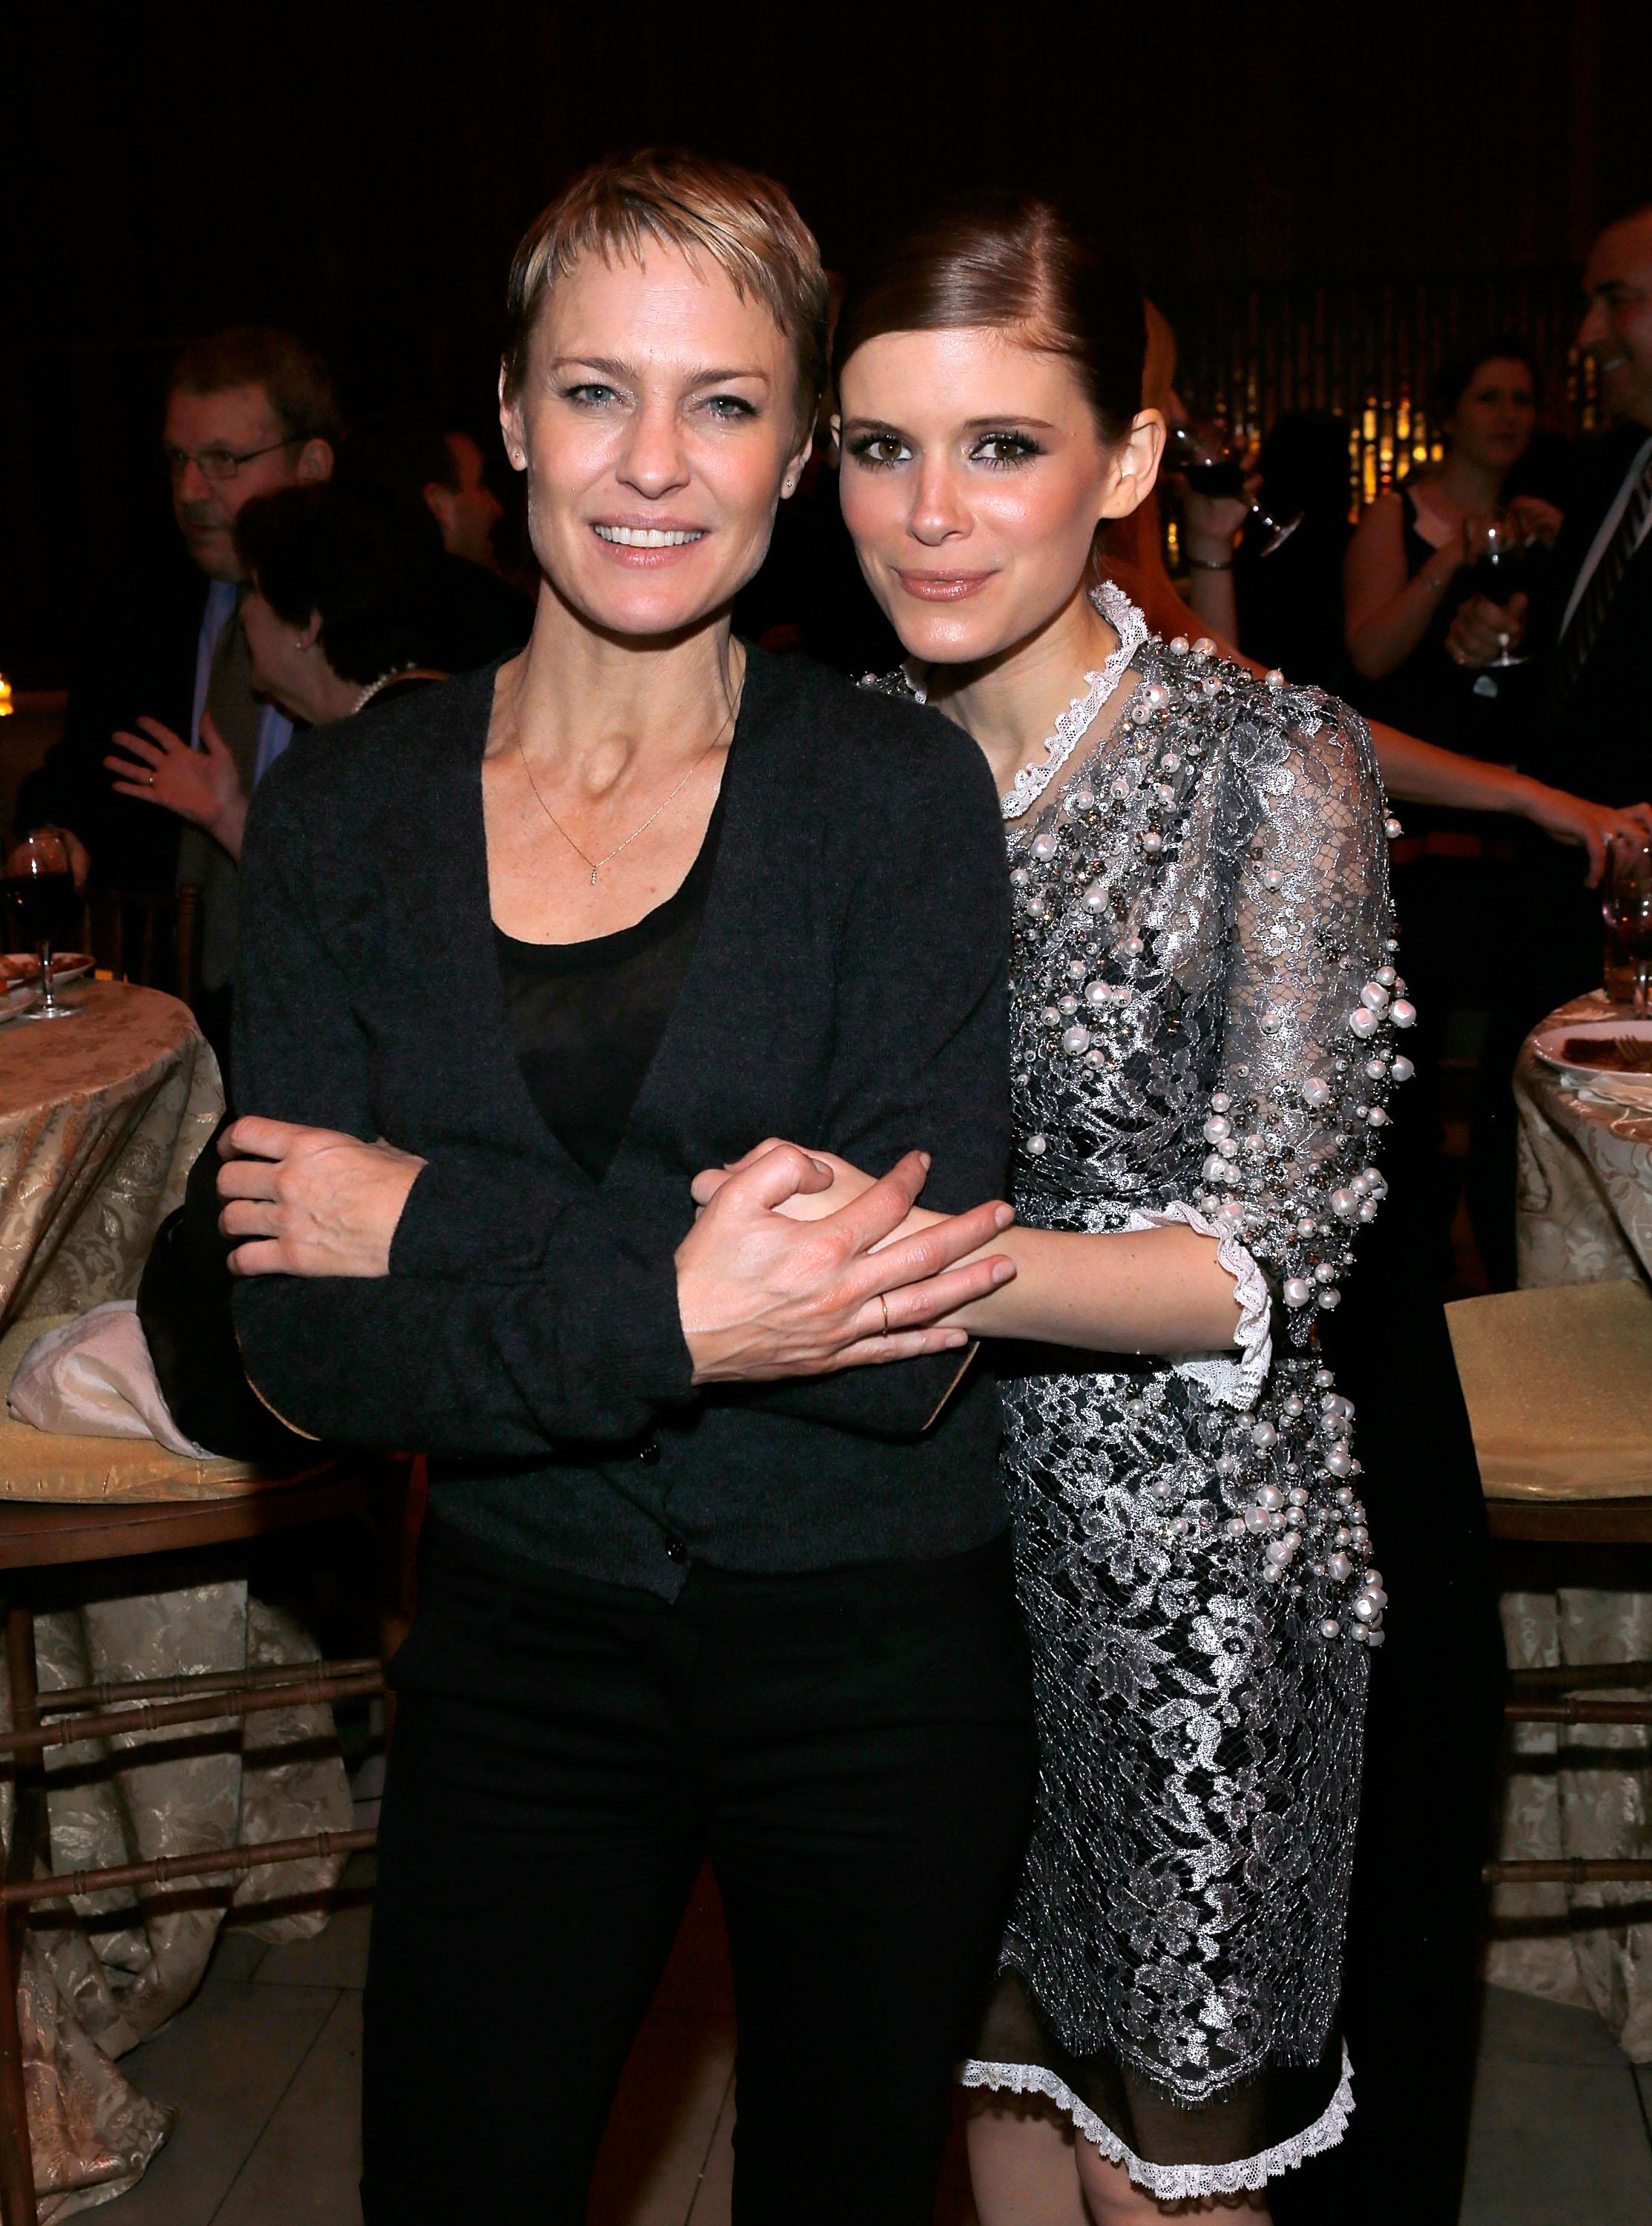 Actors Robin Wright and Kate Mara attend Netflix's House Of Cards New York premiere after-party at Alice Tully Hall on Jan. 30, 2013, in New York City.